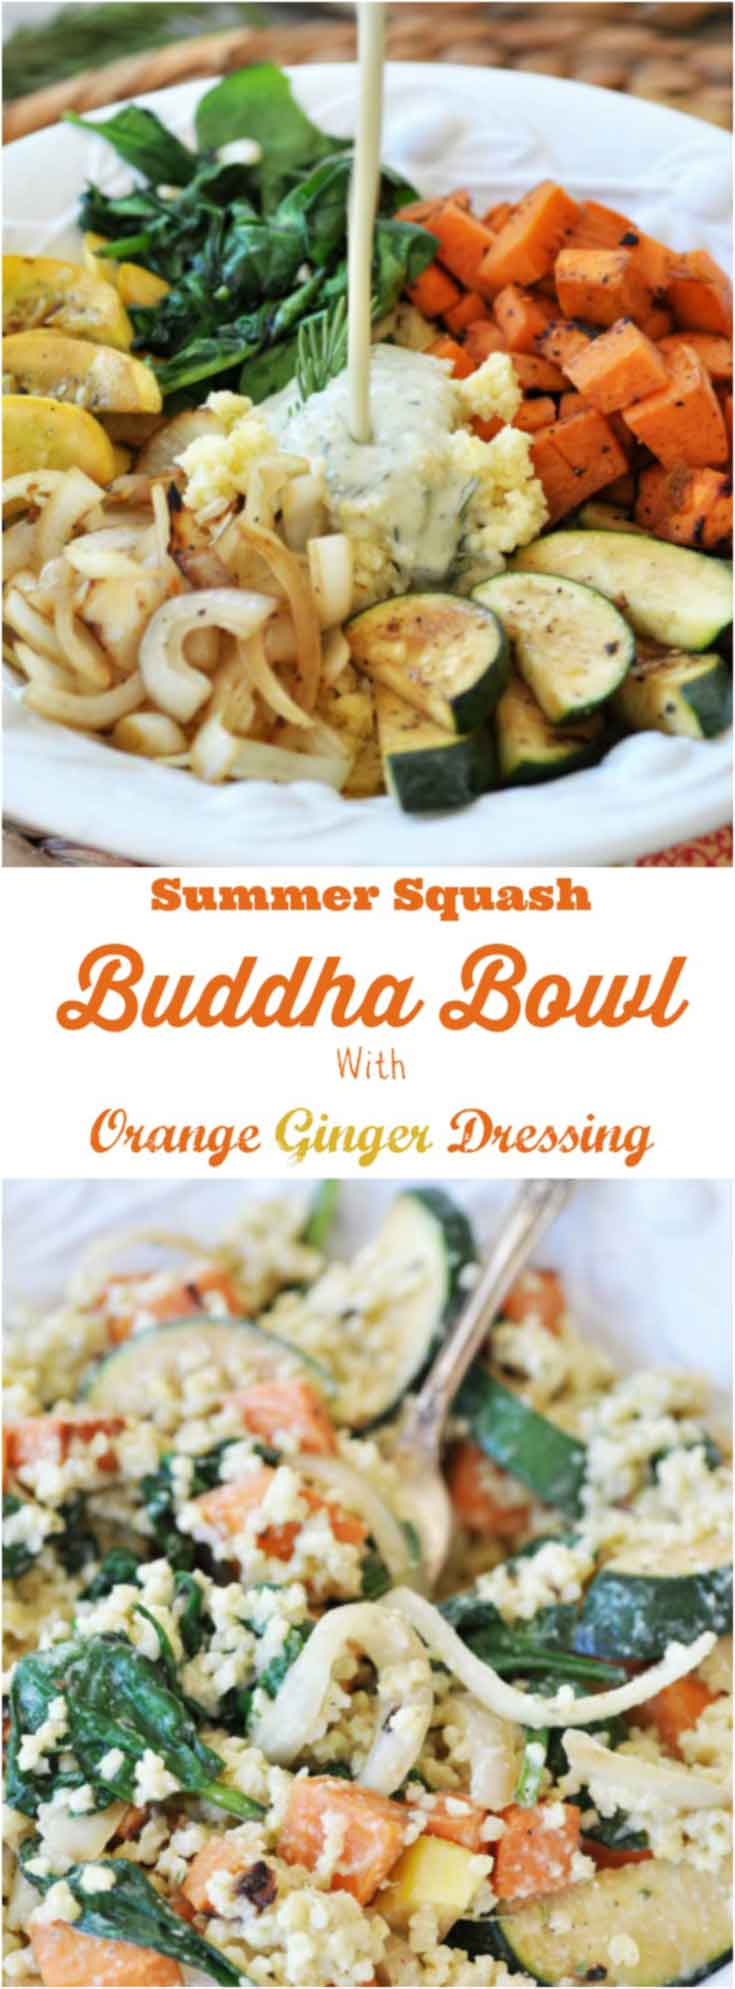 Summer Squash Buddha Bowl with Orange Ginger Dressing! This delicious and healthy Buddha bowl recipe is filled with superfoods and the most delicious creamy ginger orange dressing. It's a new family favorite. www.veganosity.com